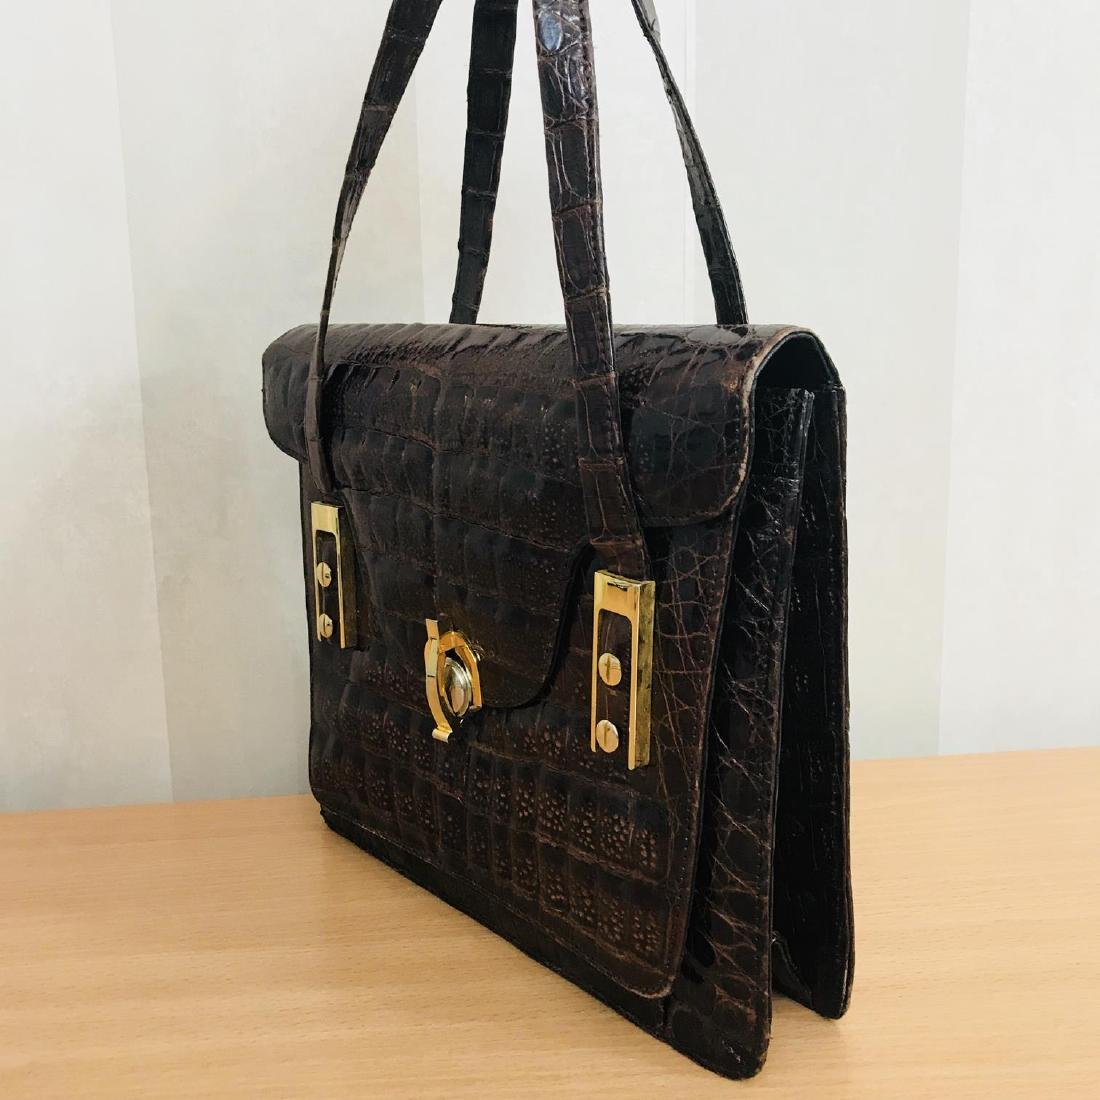 Vintage Genuine Crocodile Leather Handbag - 5